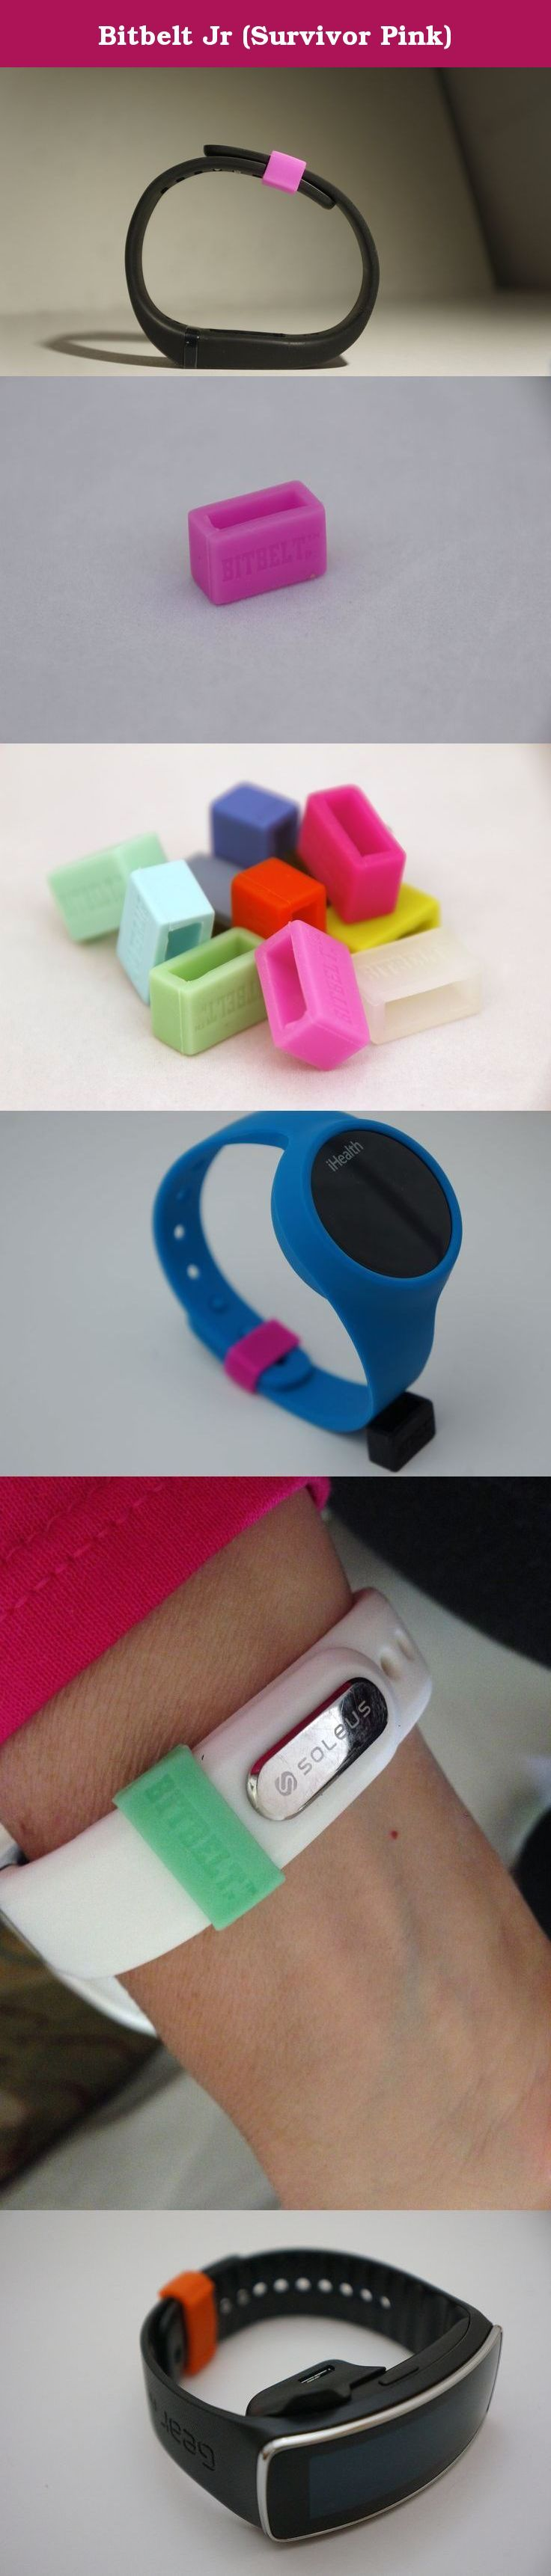 Bitbelt Jr (Survivor Pink). BITBELT JR CREATED TO PROTECT YOUR THINNER WIDTH WRIST WORN FITNESS TRACKER AND CHILD SIZE MAGIC BAND. DONT RELY ON A SMALL PLASTIC CLIP TO SECURE YOUR INVESTMENT TO HEALTH OR YOUR VACATION.WE ARE THE CHEAPEST INSURANCE AVAILABLE. Your bracelet will come unclasped. We are the cheapest insurance available to keep yours from being lost.